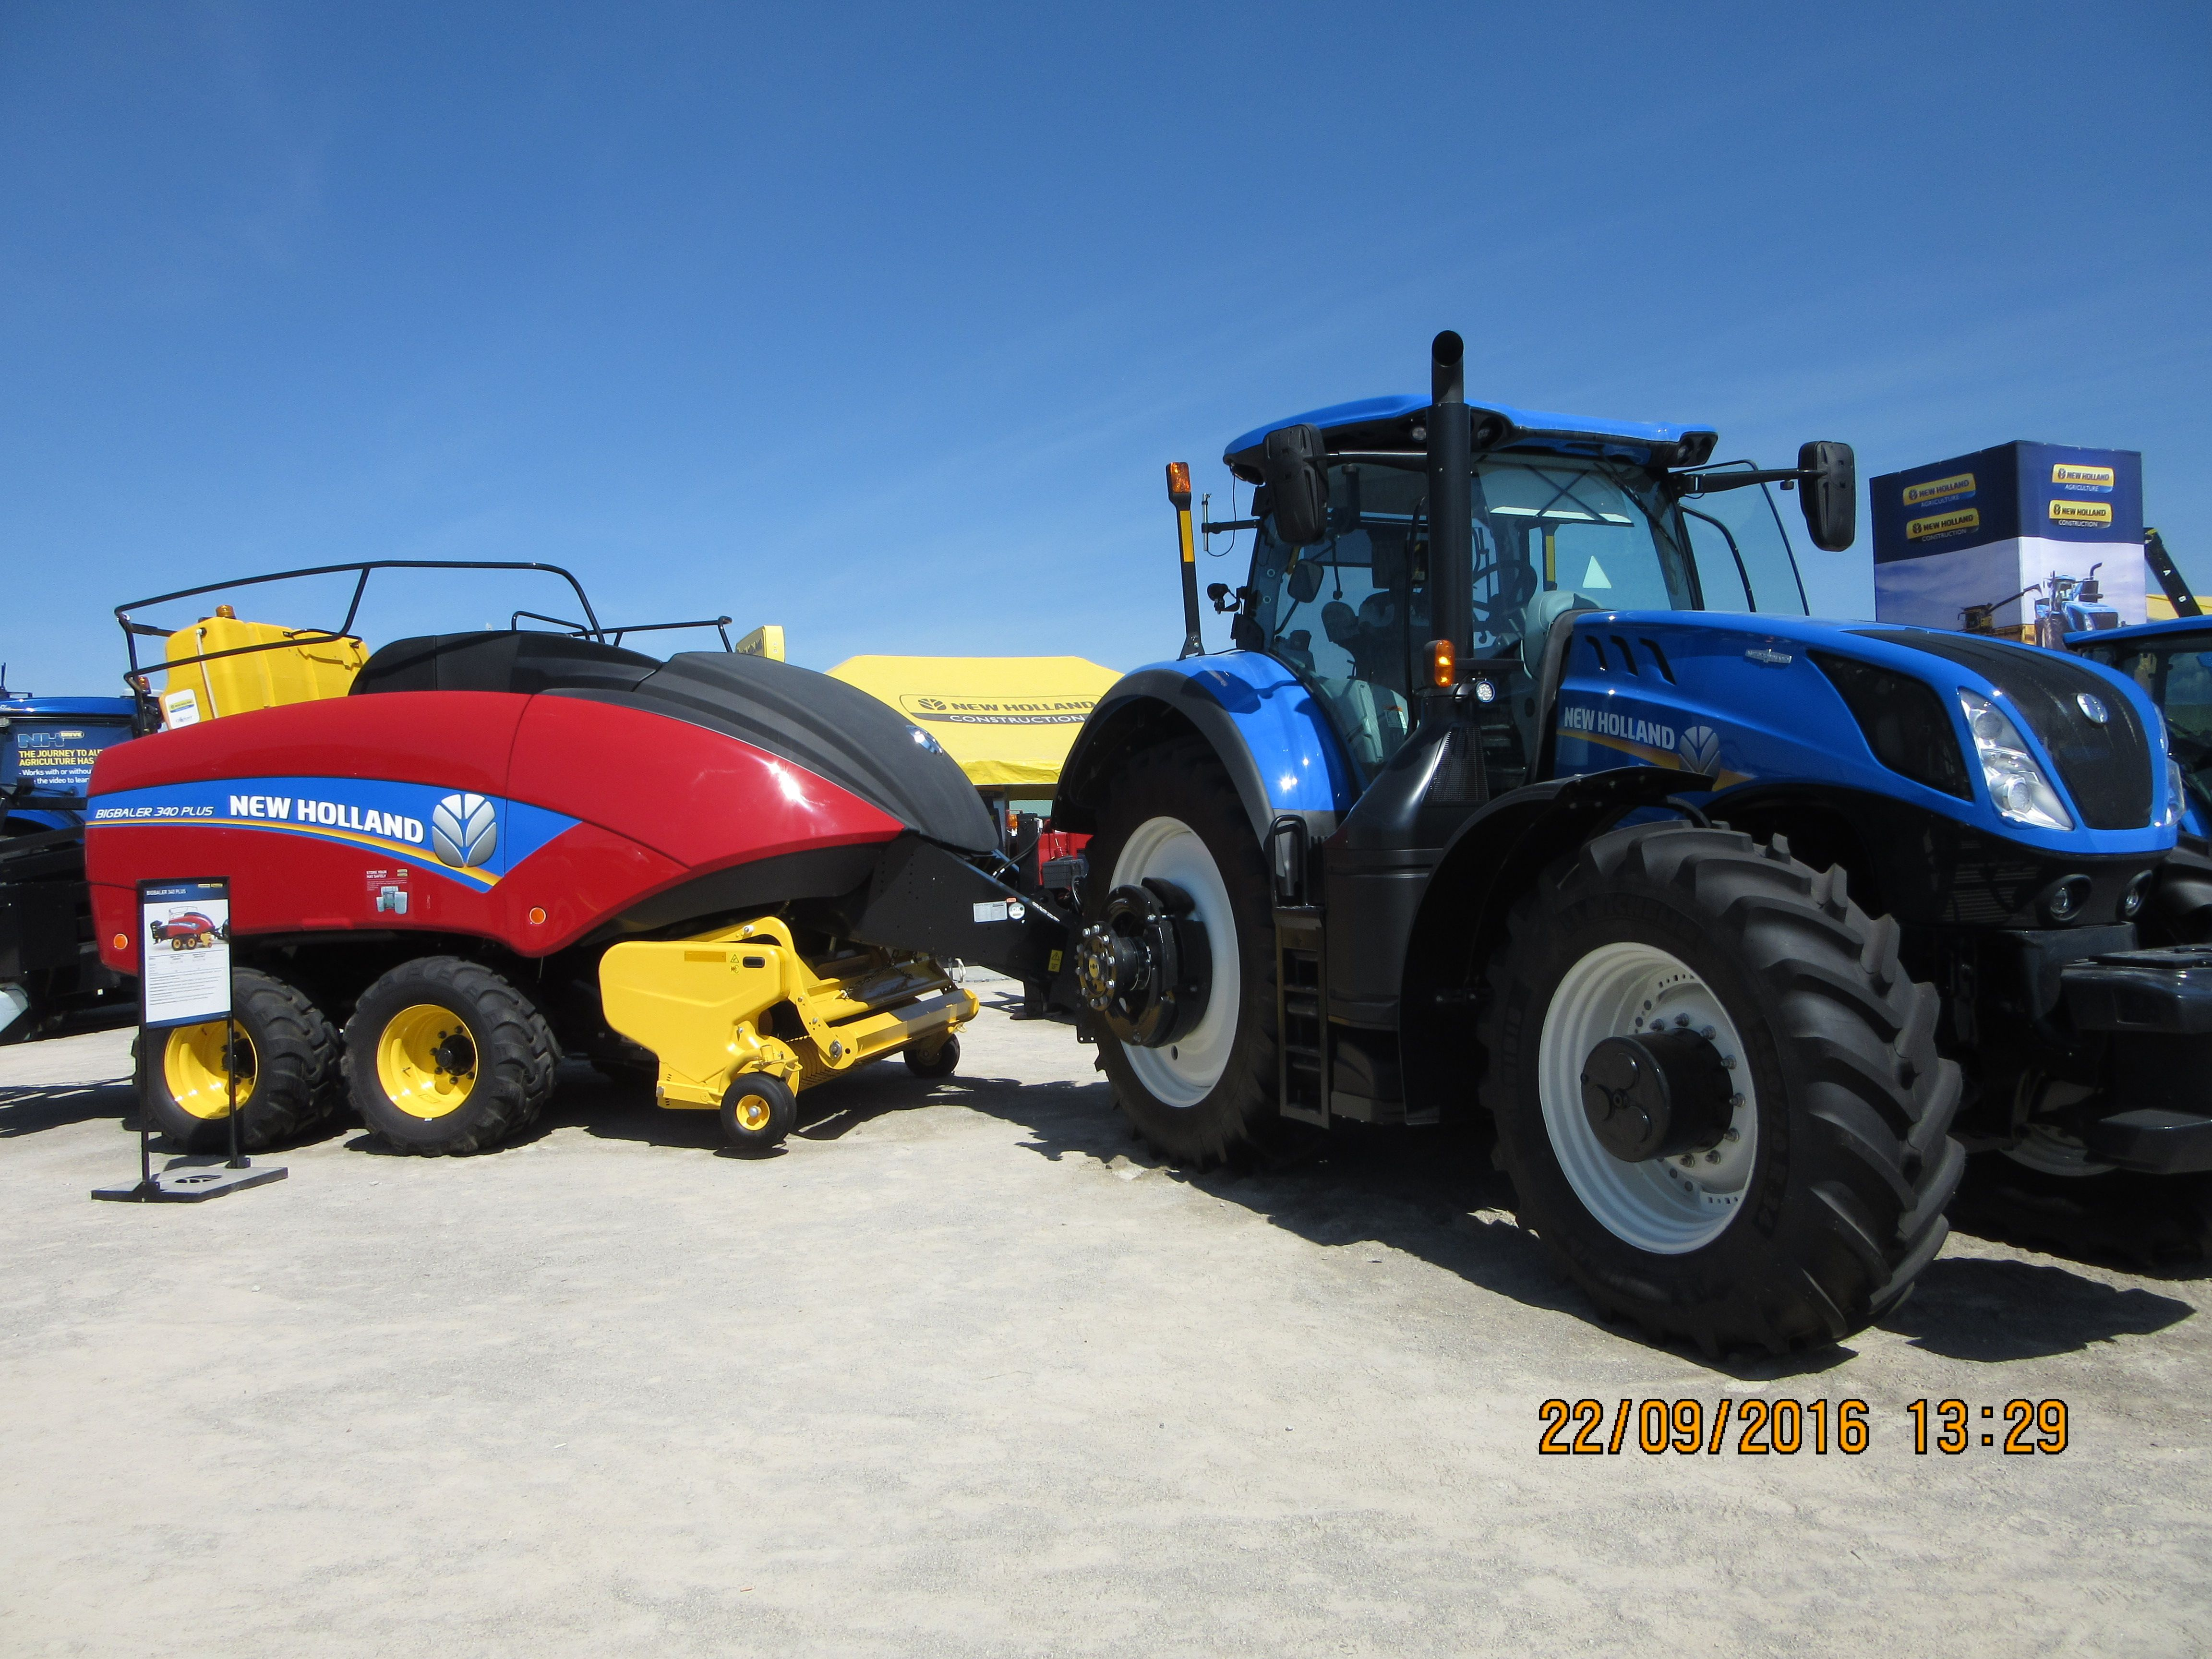 New Holland T7 315 pulling a Big baler 340 plus | New